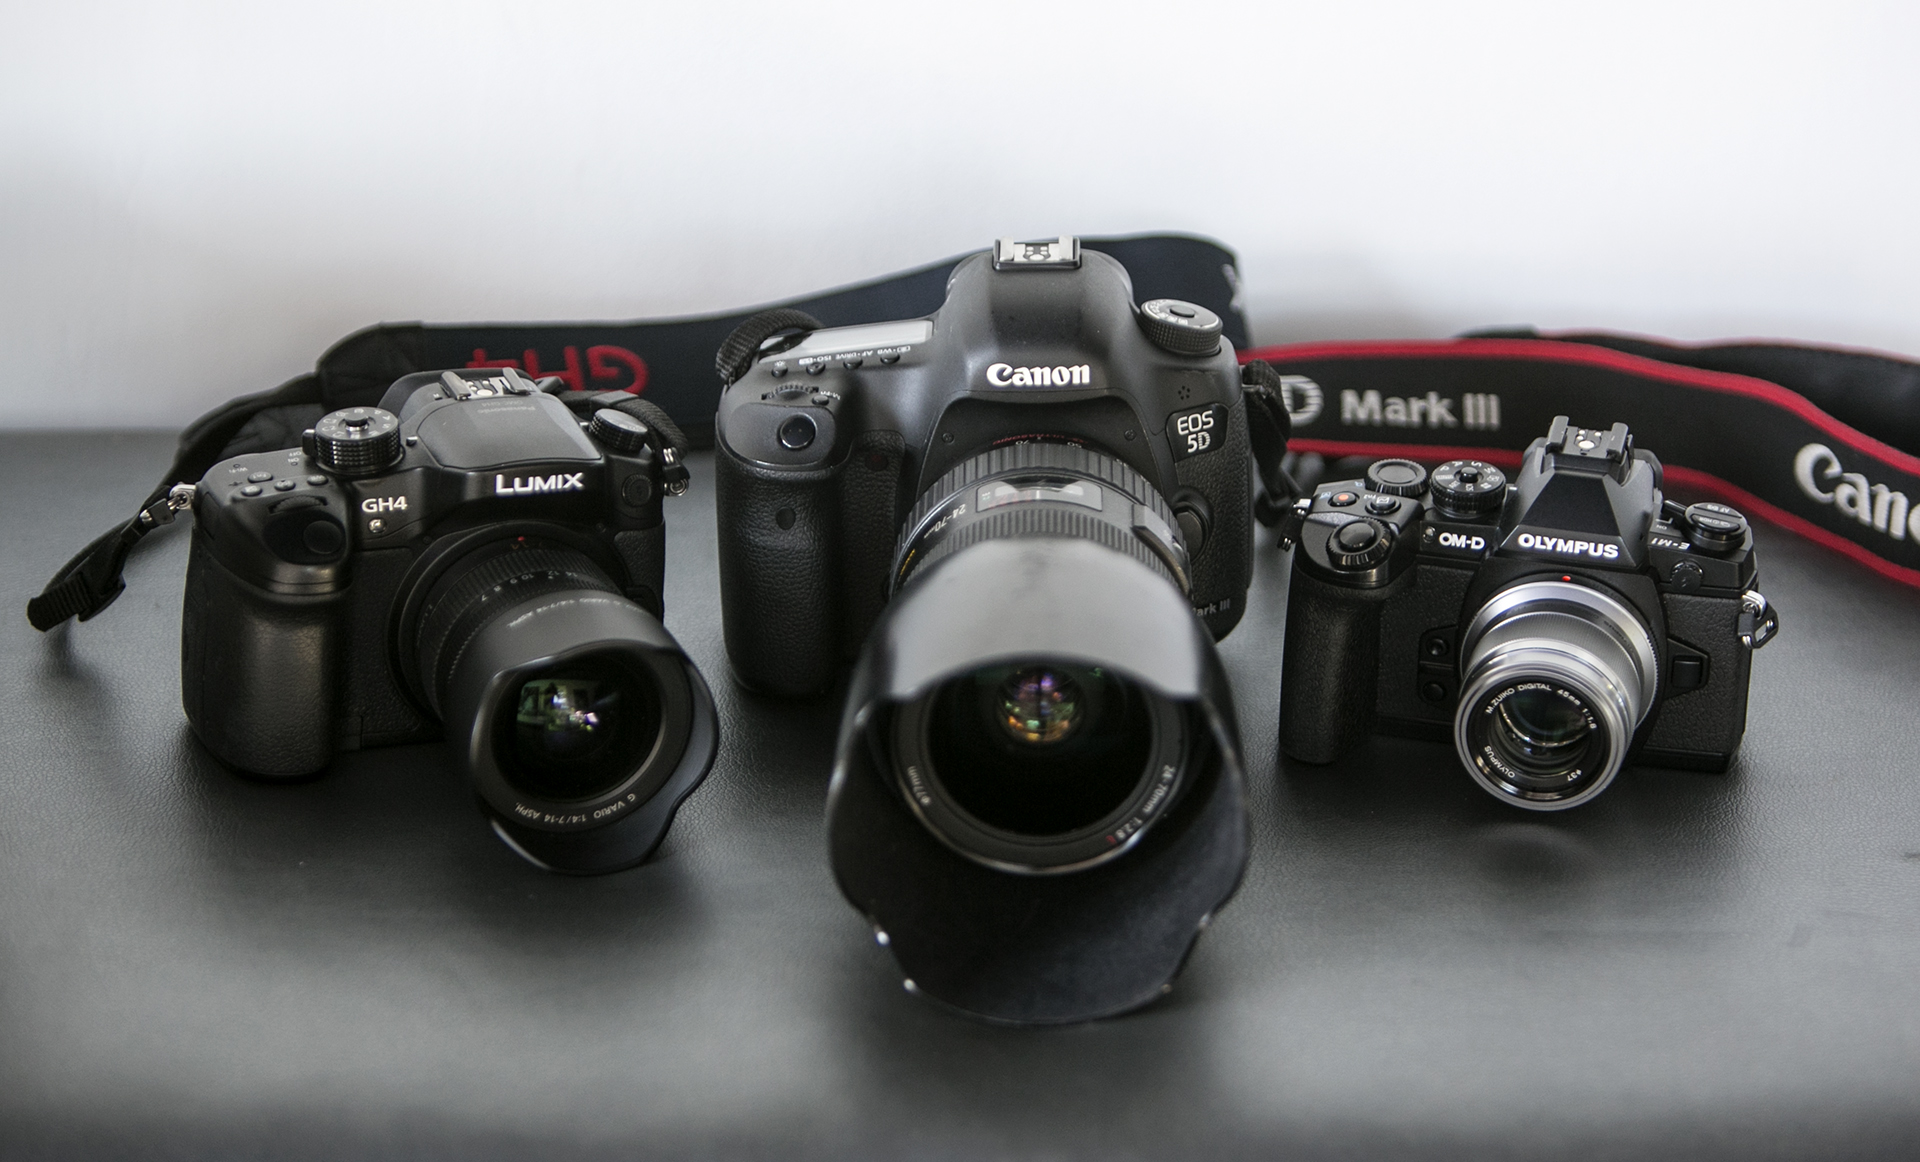 Left to Right... Olympus OMD-EM1 | Canon 5D Mark III | Panasonic Lumix GH4